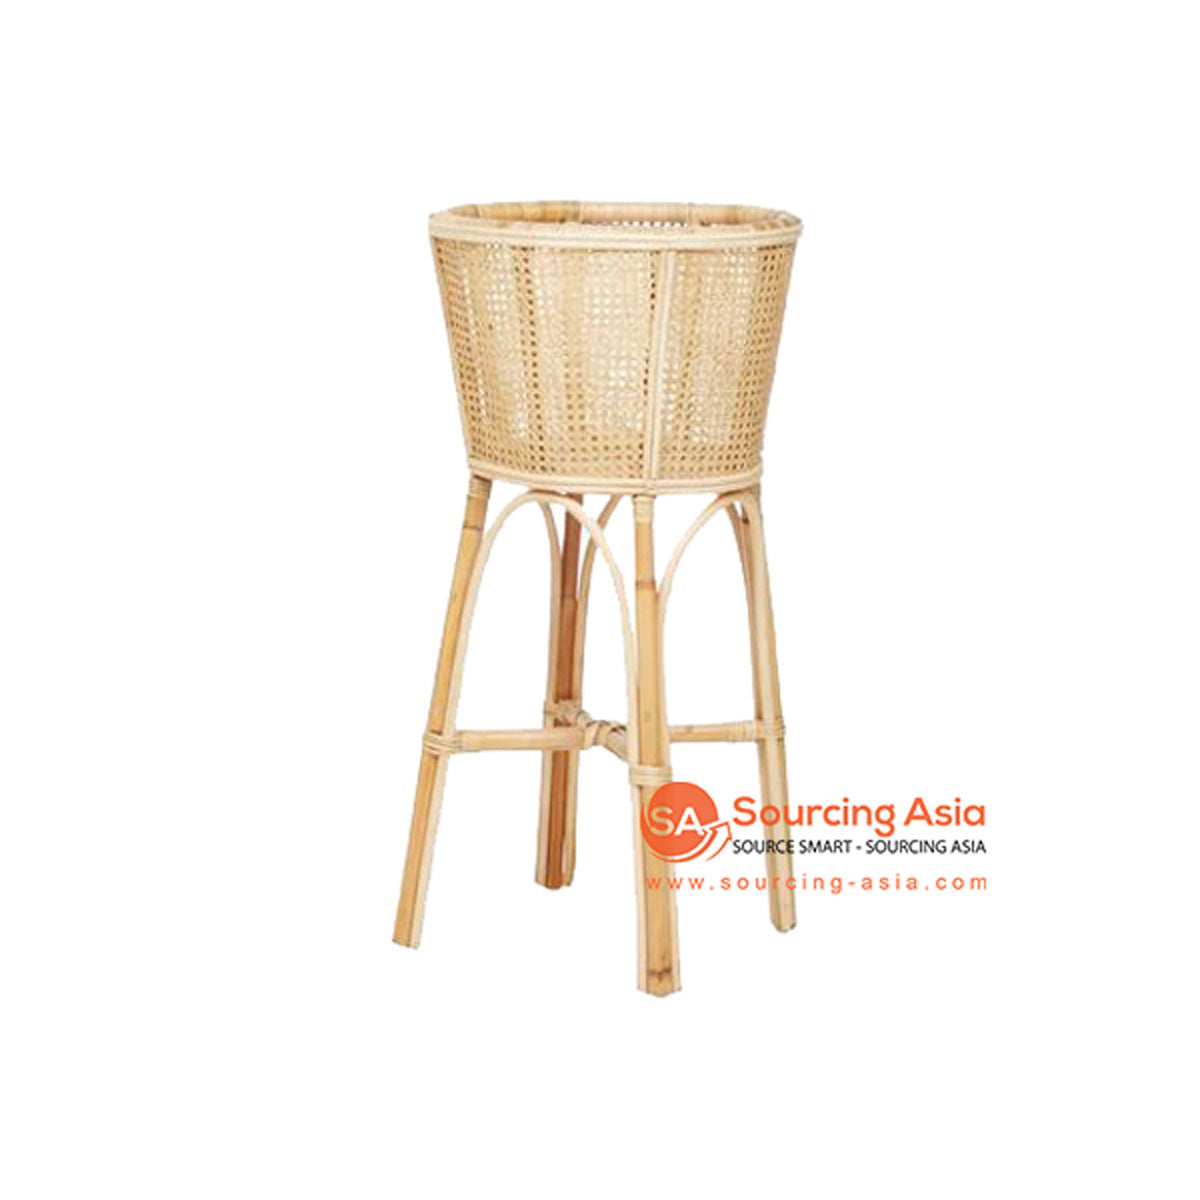 SHL093 NATURAL RATTAN ROUND PLANTER